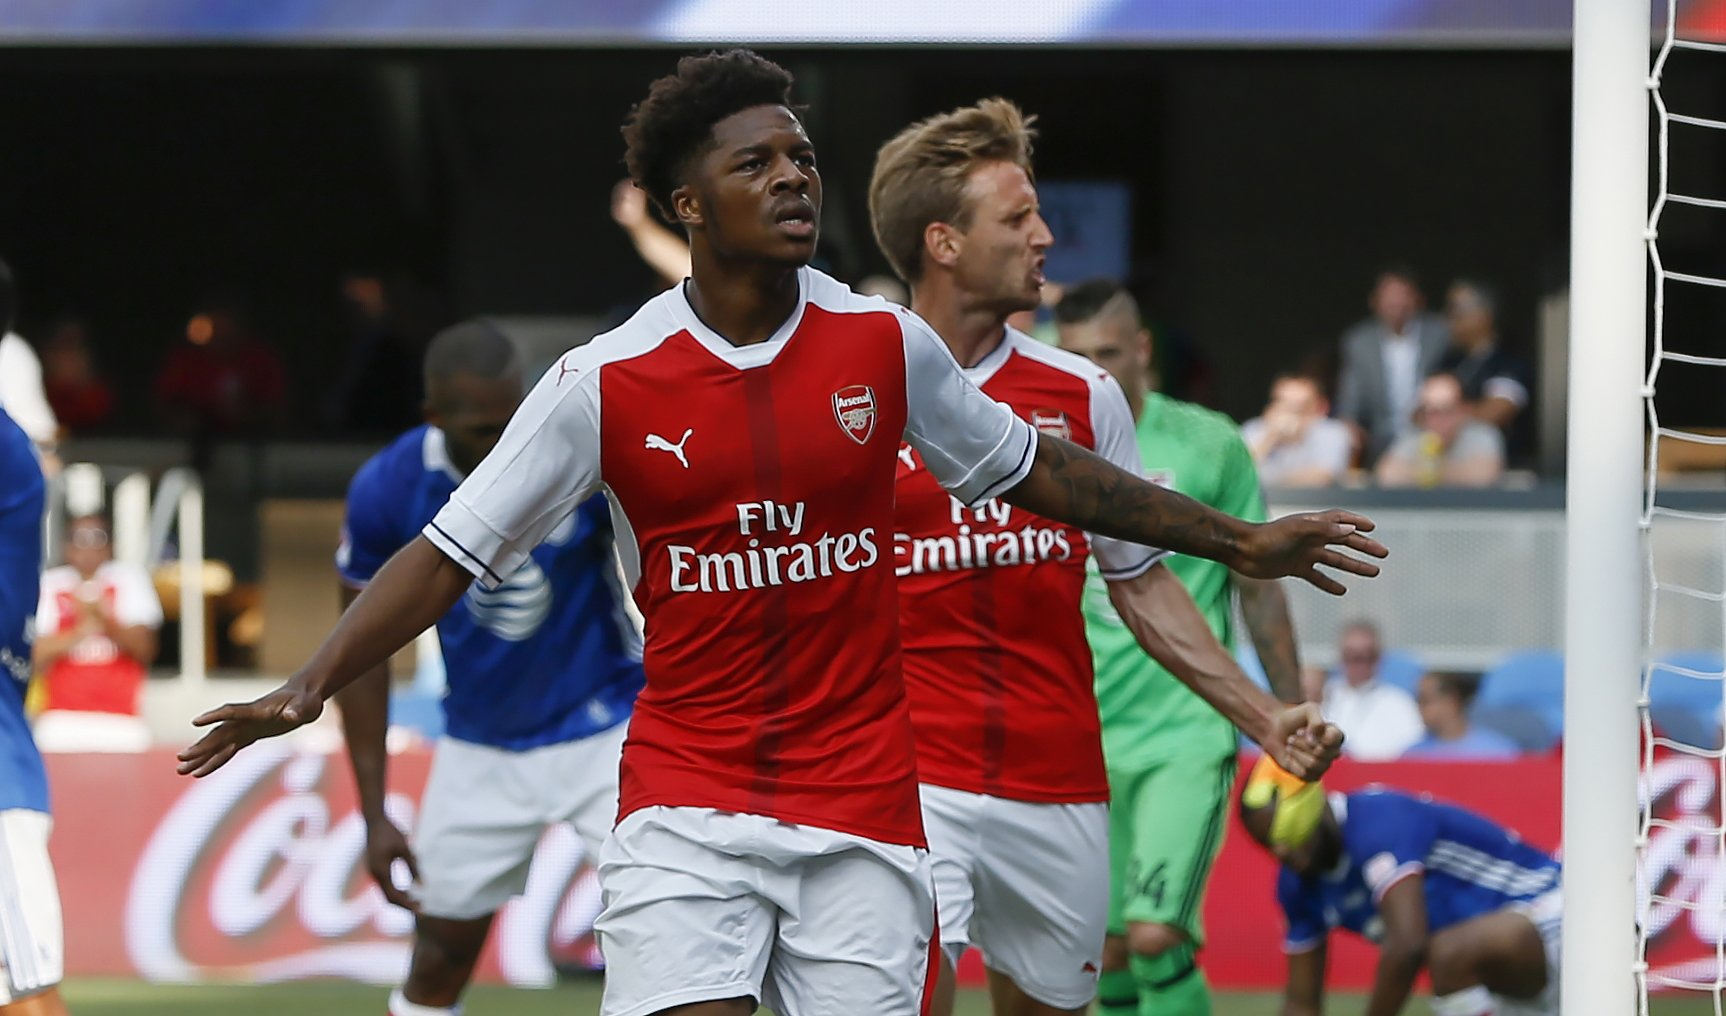 Akpom Replaces Solanke In England U-21 Squad